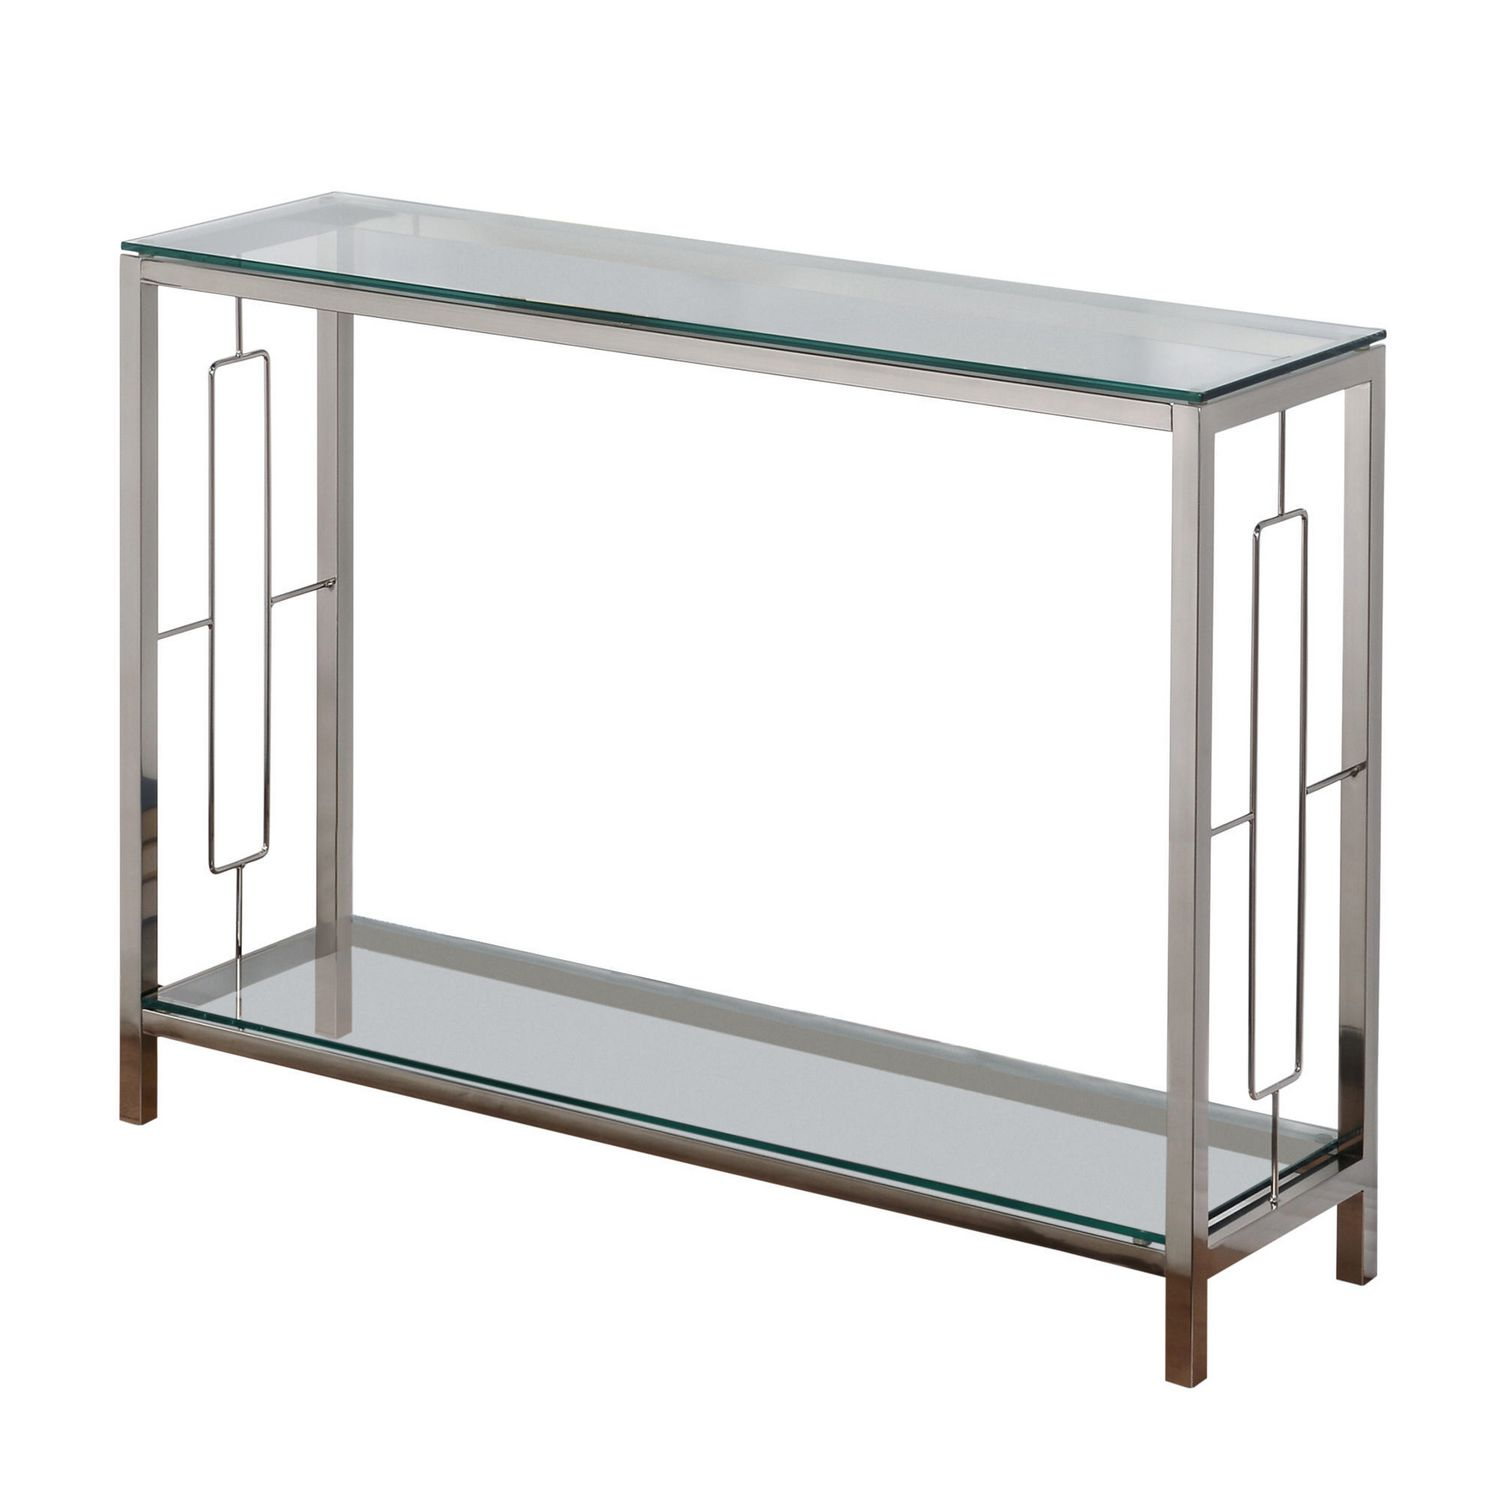 Console Table Canada worldwide homefurnishings chrome/glass console table | walmart.ca